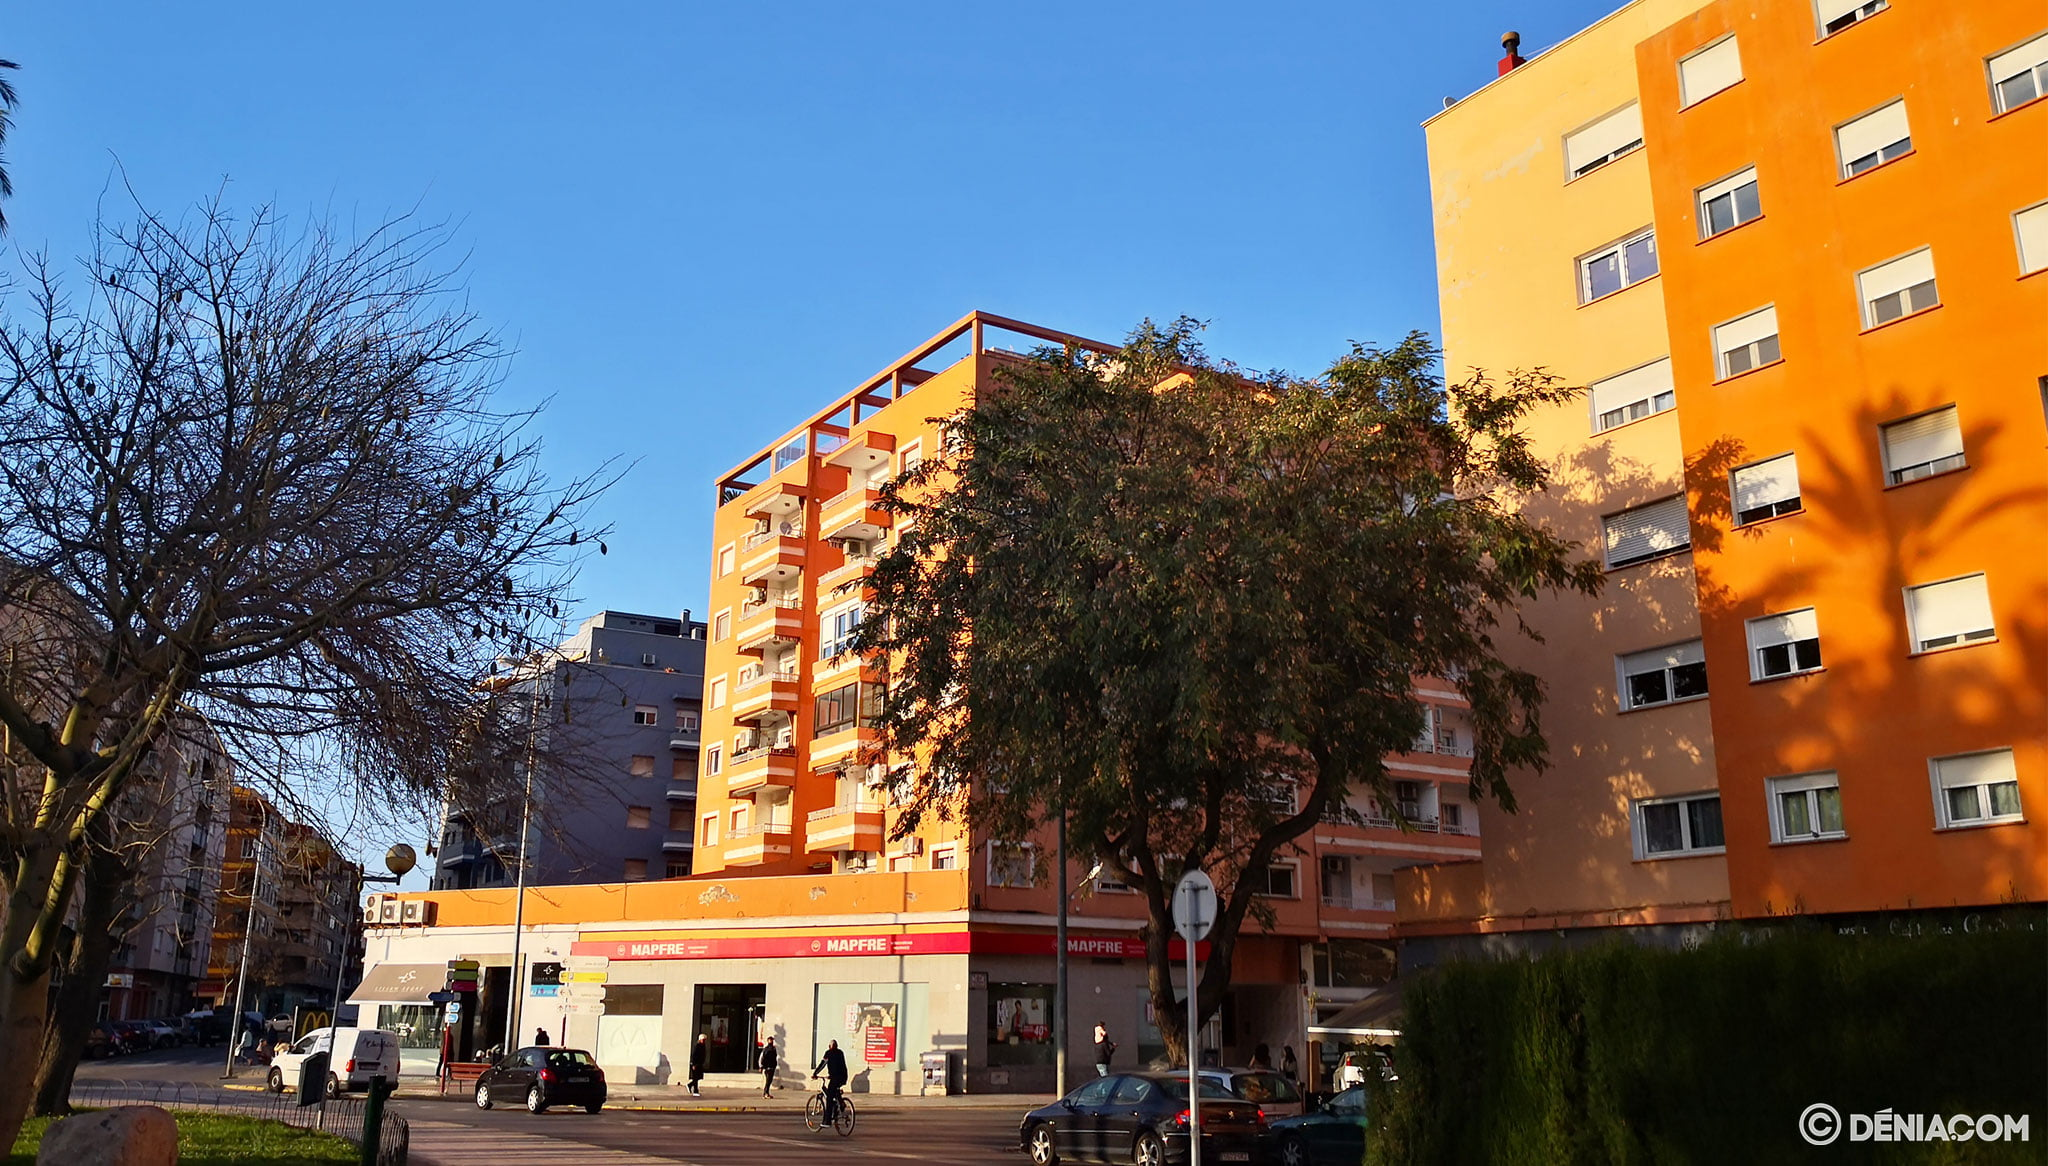 "The three buildings ""Paris"", between Paseo del Saladar, Patricio Ferrándiz and Senija street, in Dénia"